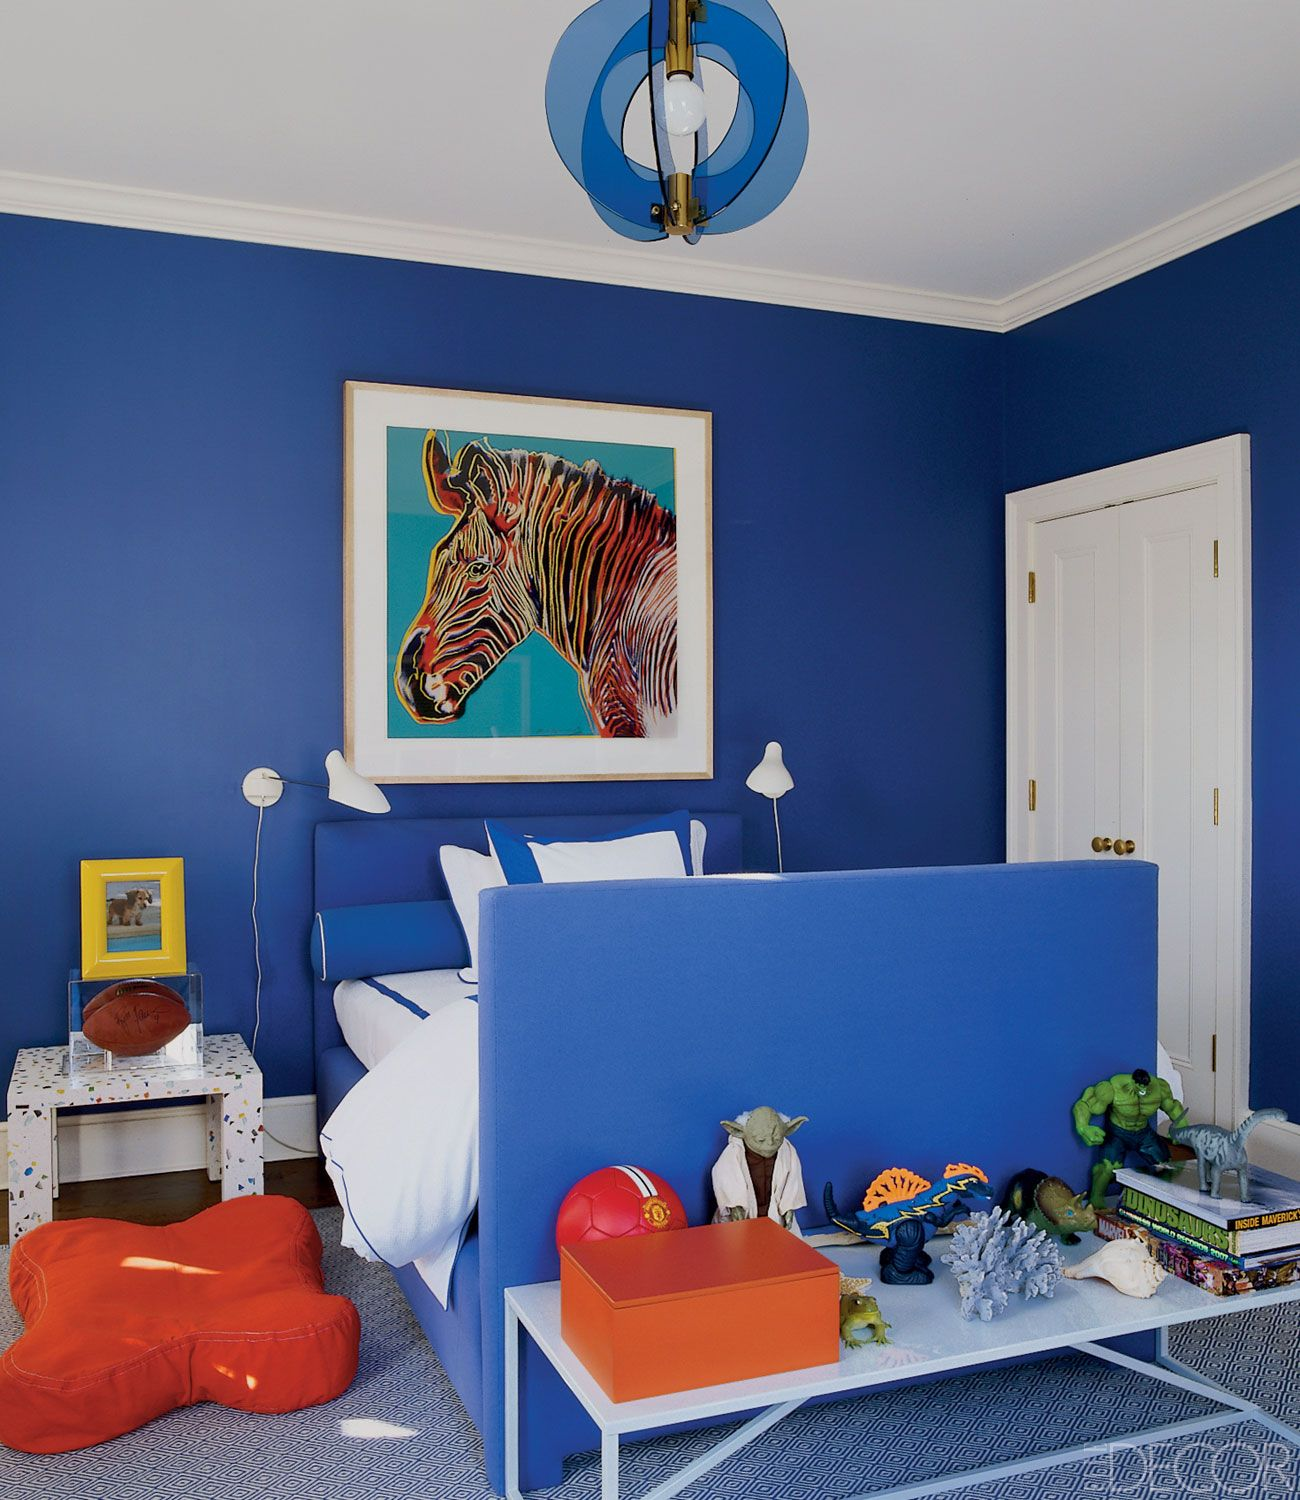 Bedroom For Boy 15 Cool Boys Bedroom Ideas  Decorating A Little Boy Room